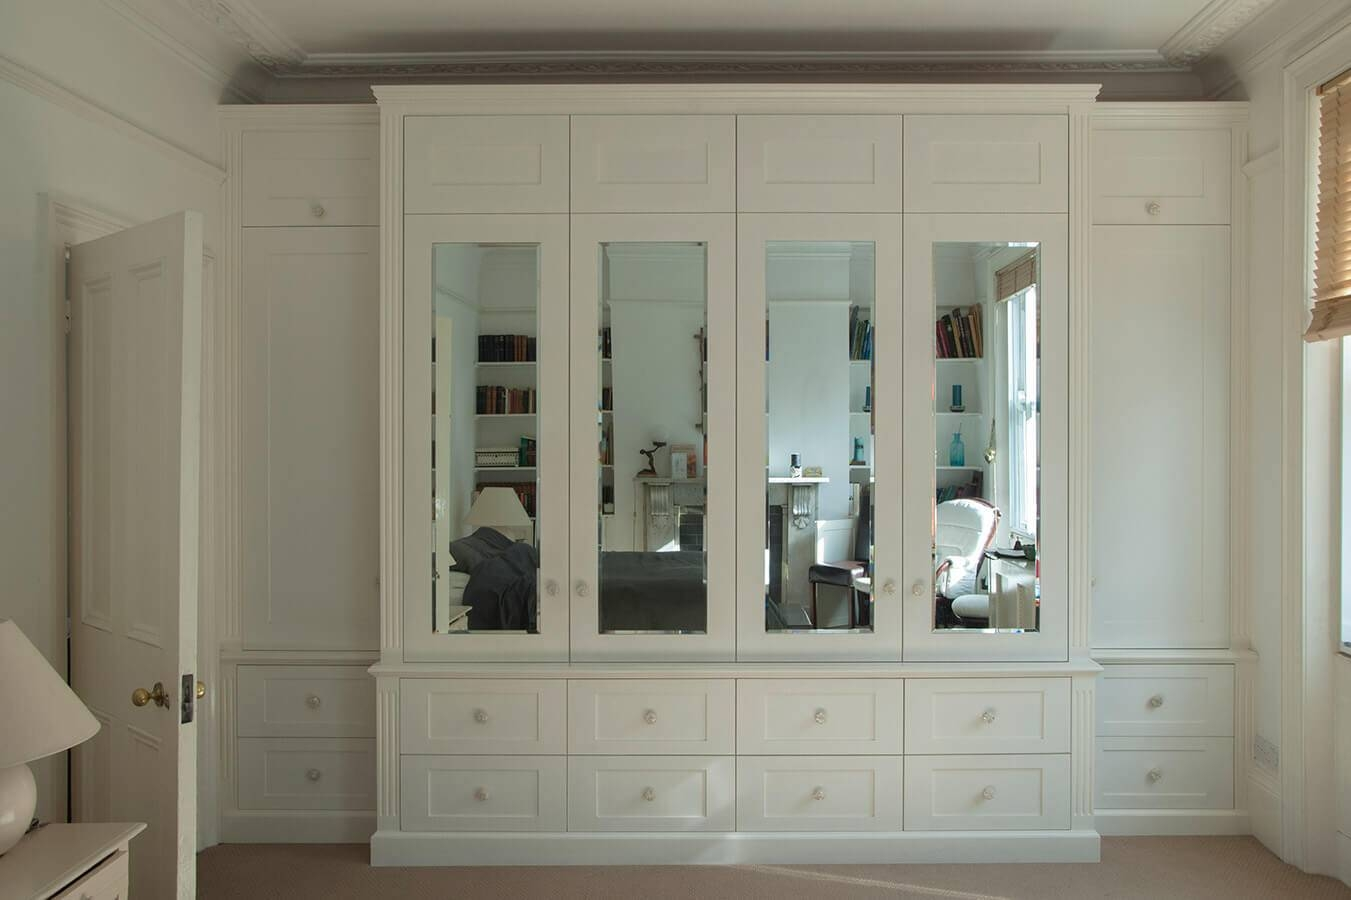 Fitted Bedrooms | Wardrobes, Beds And Chests Of Drawers Throughout Wardrobes With Mirror (View 3 of 15)